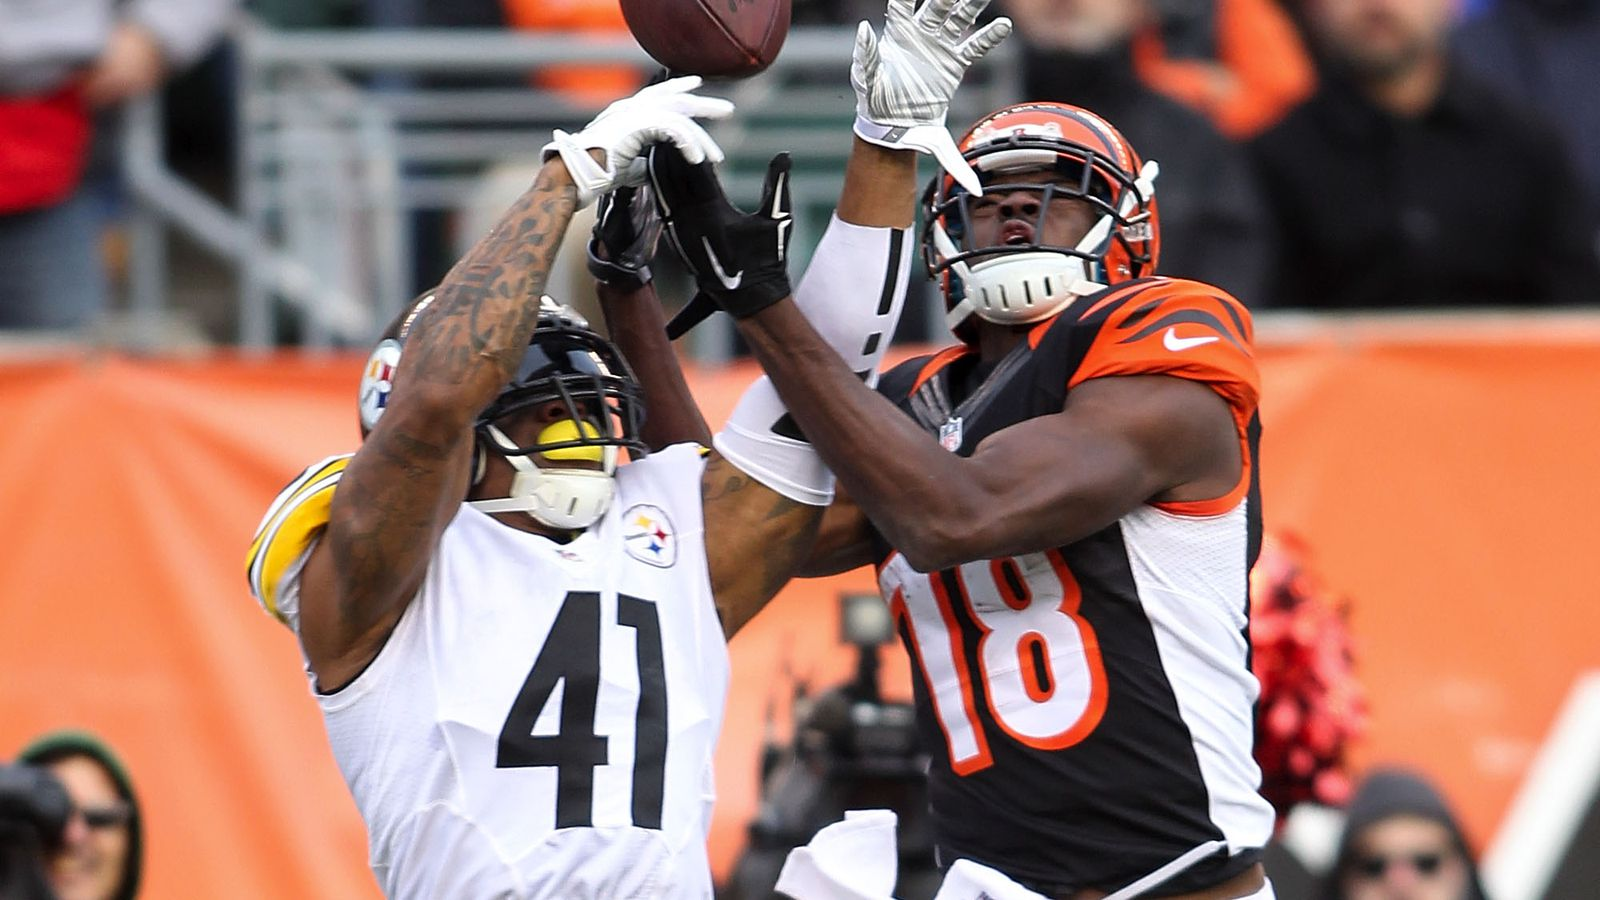 Tennessee Titans sign Steelers scapegoat Antwon Blake to one-year contract e8a91b5ee